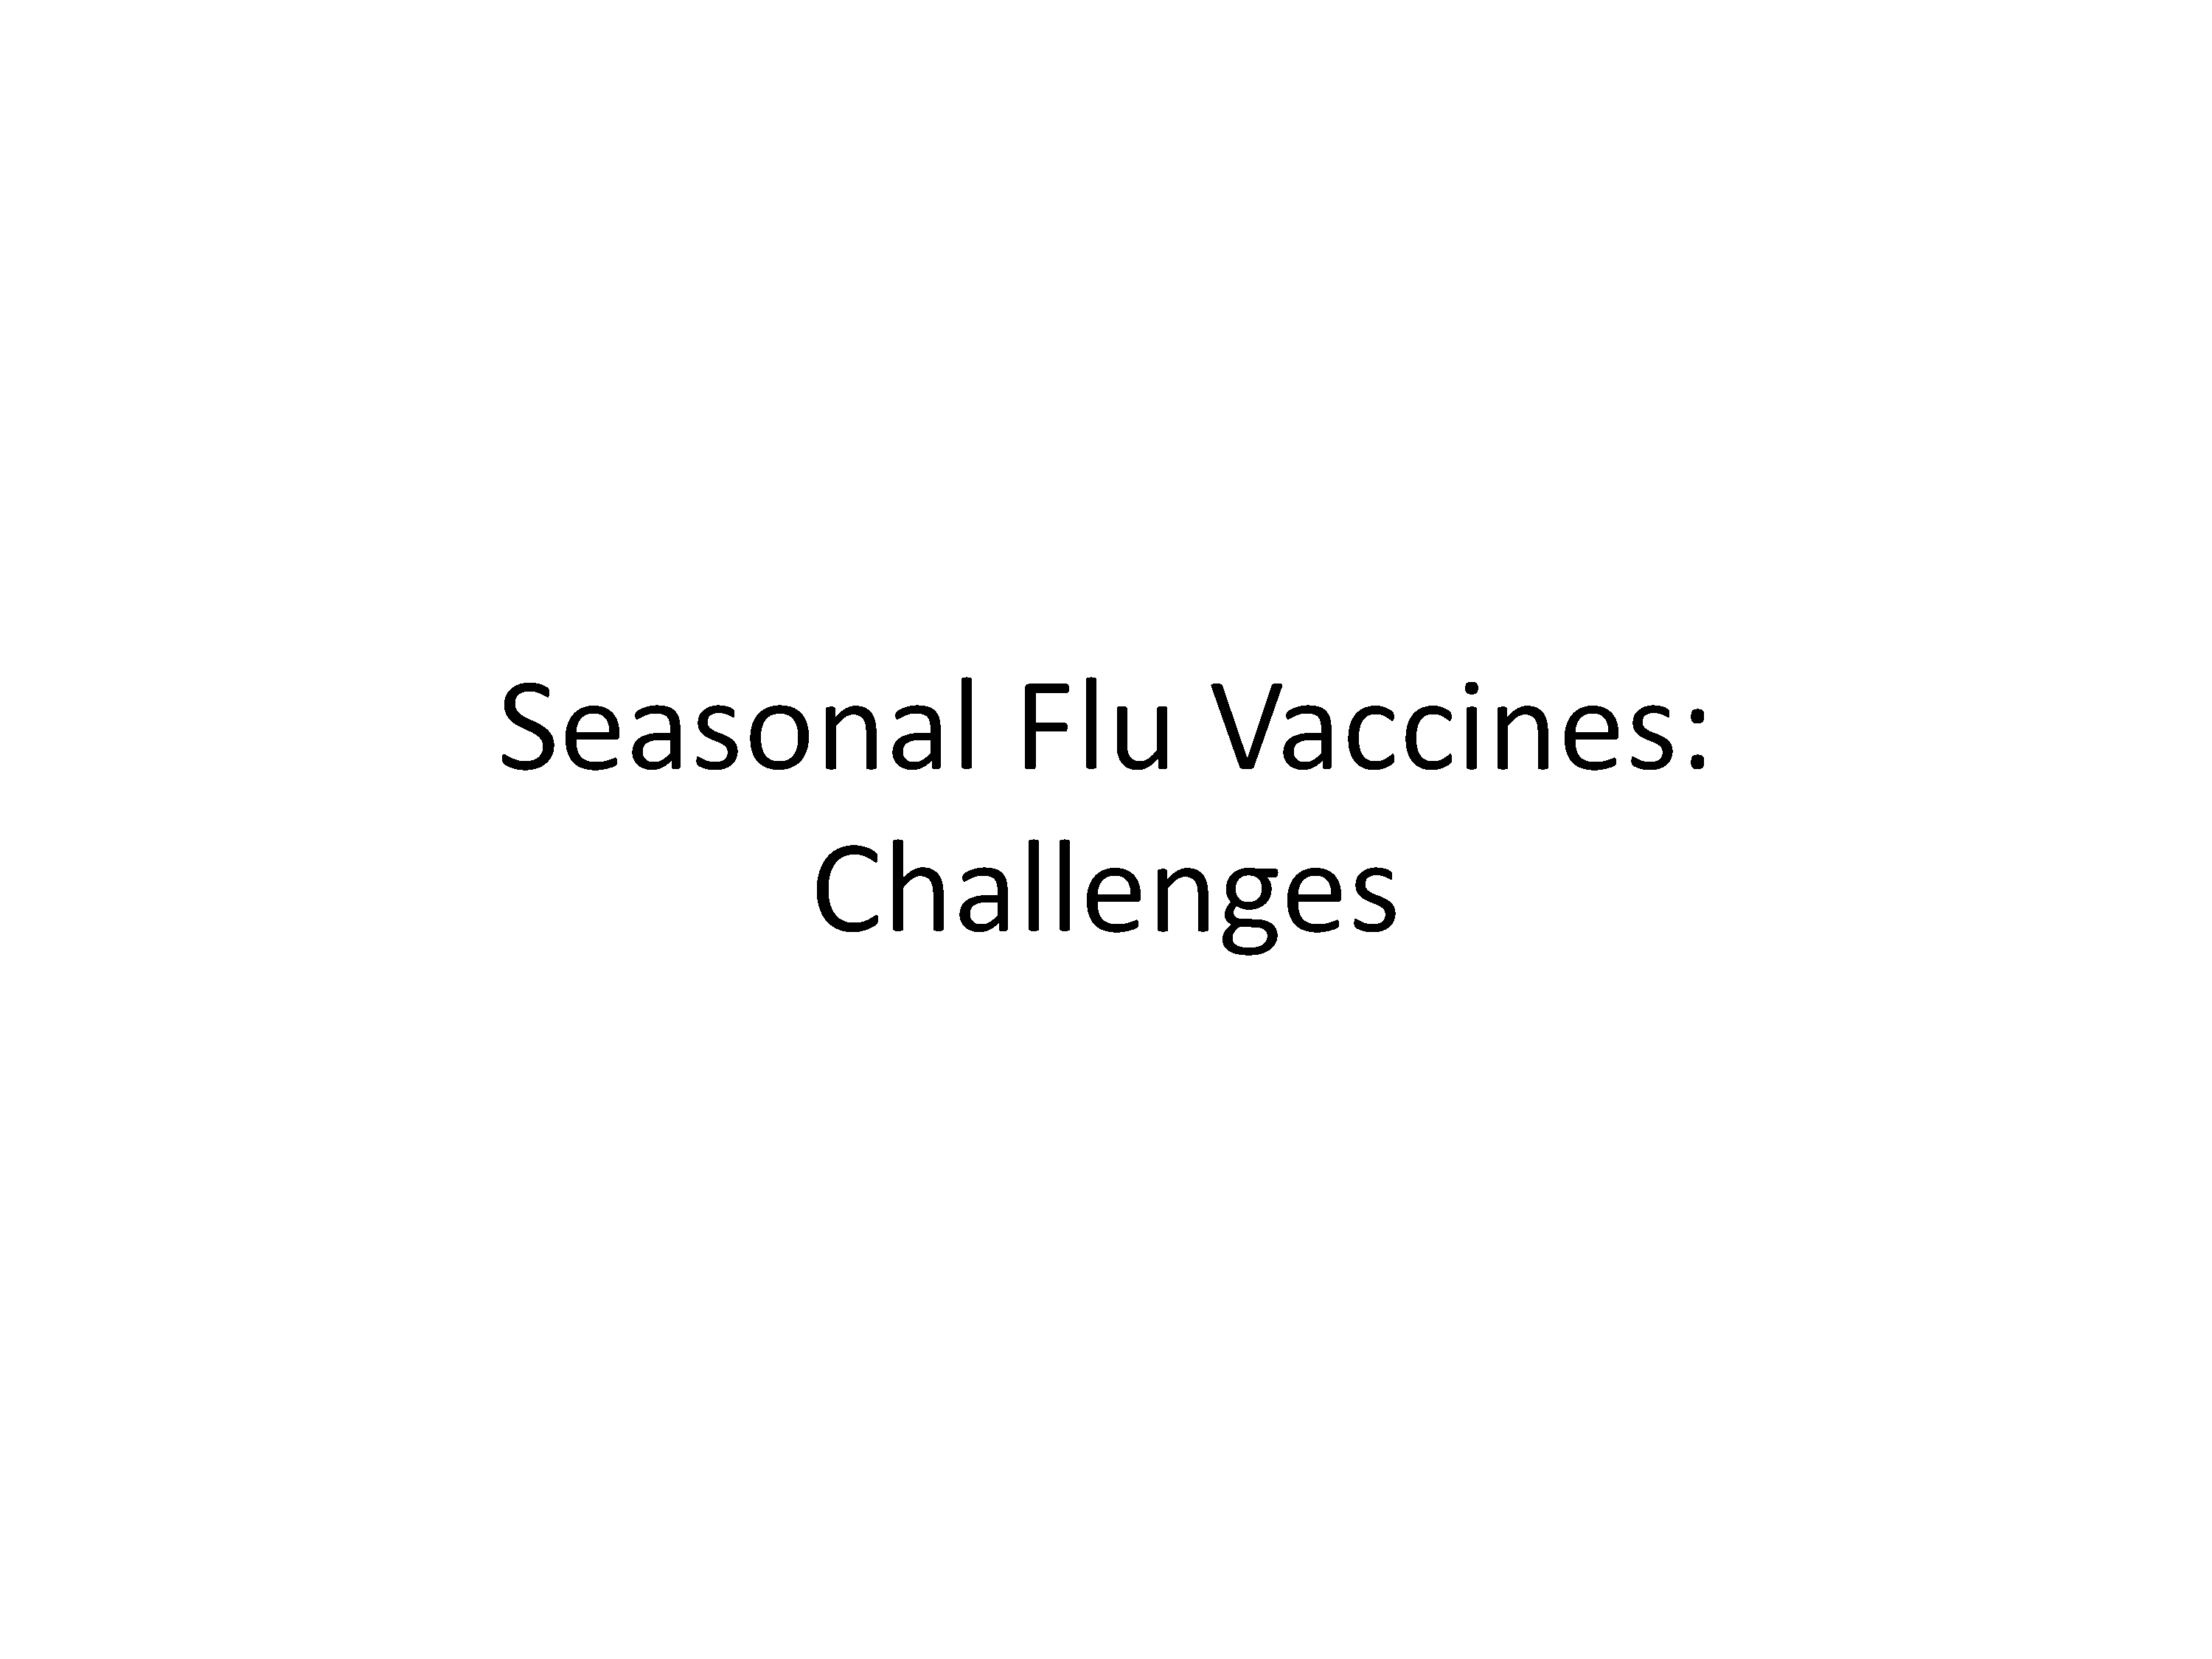 Seasonal-flu-vaccine-challenges-0